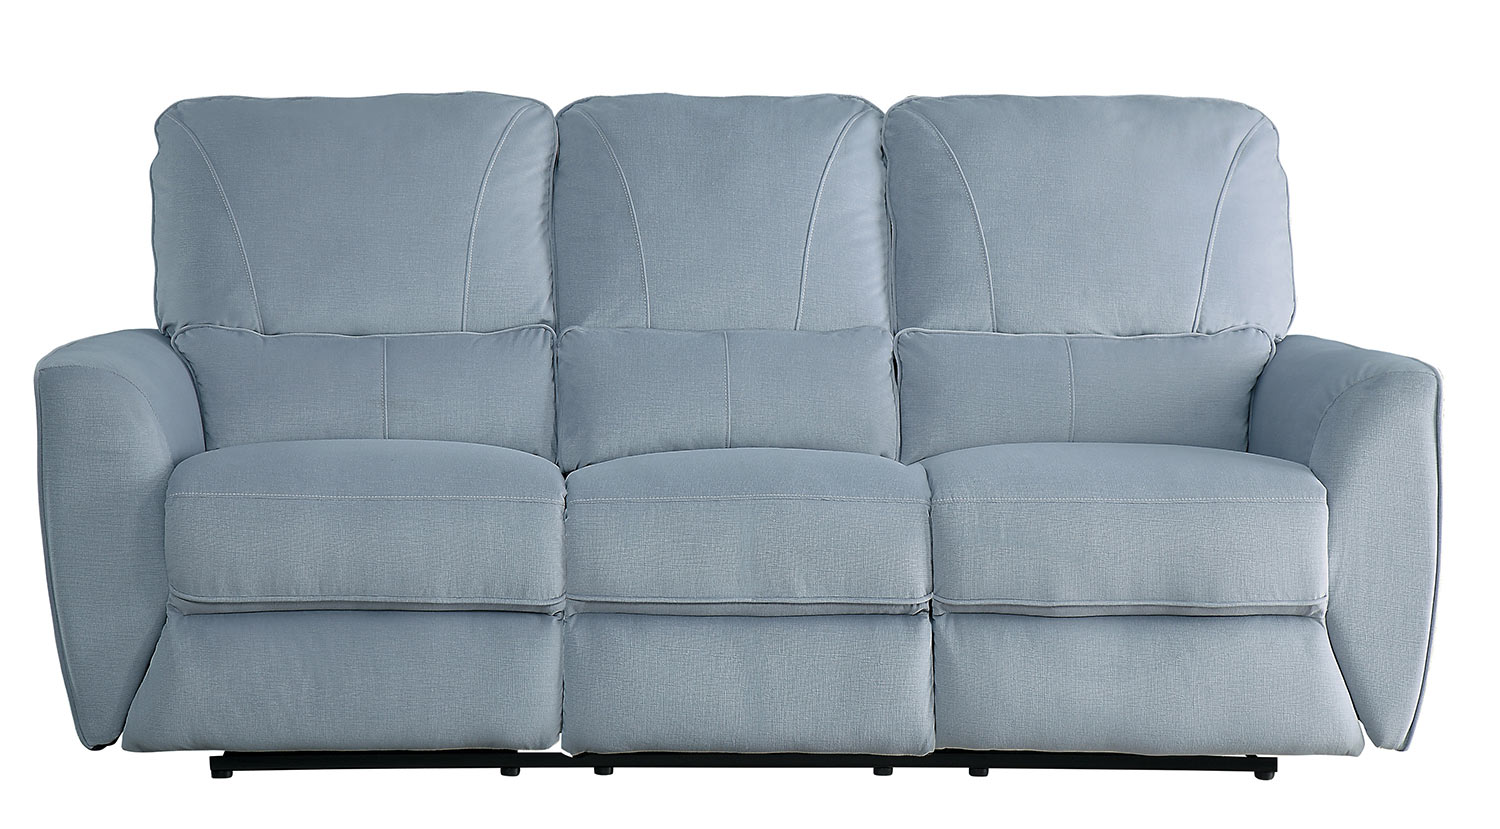 Homelegance Dowling Double Reclining Sofa - Light Gray